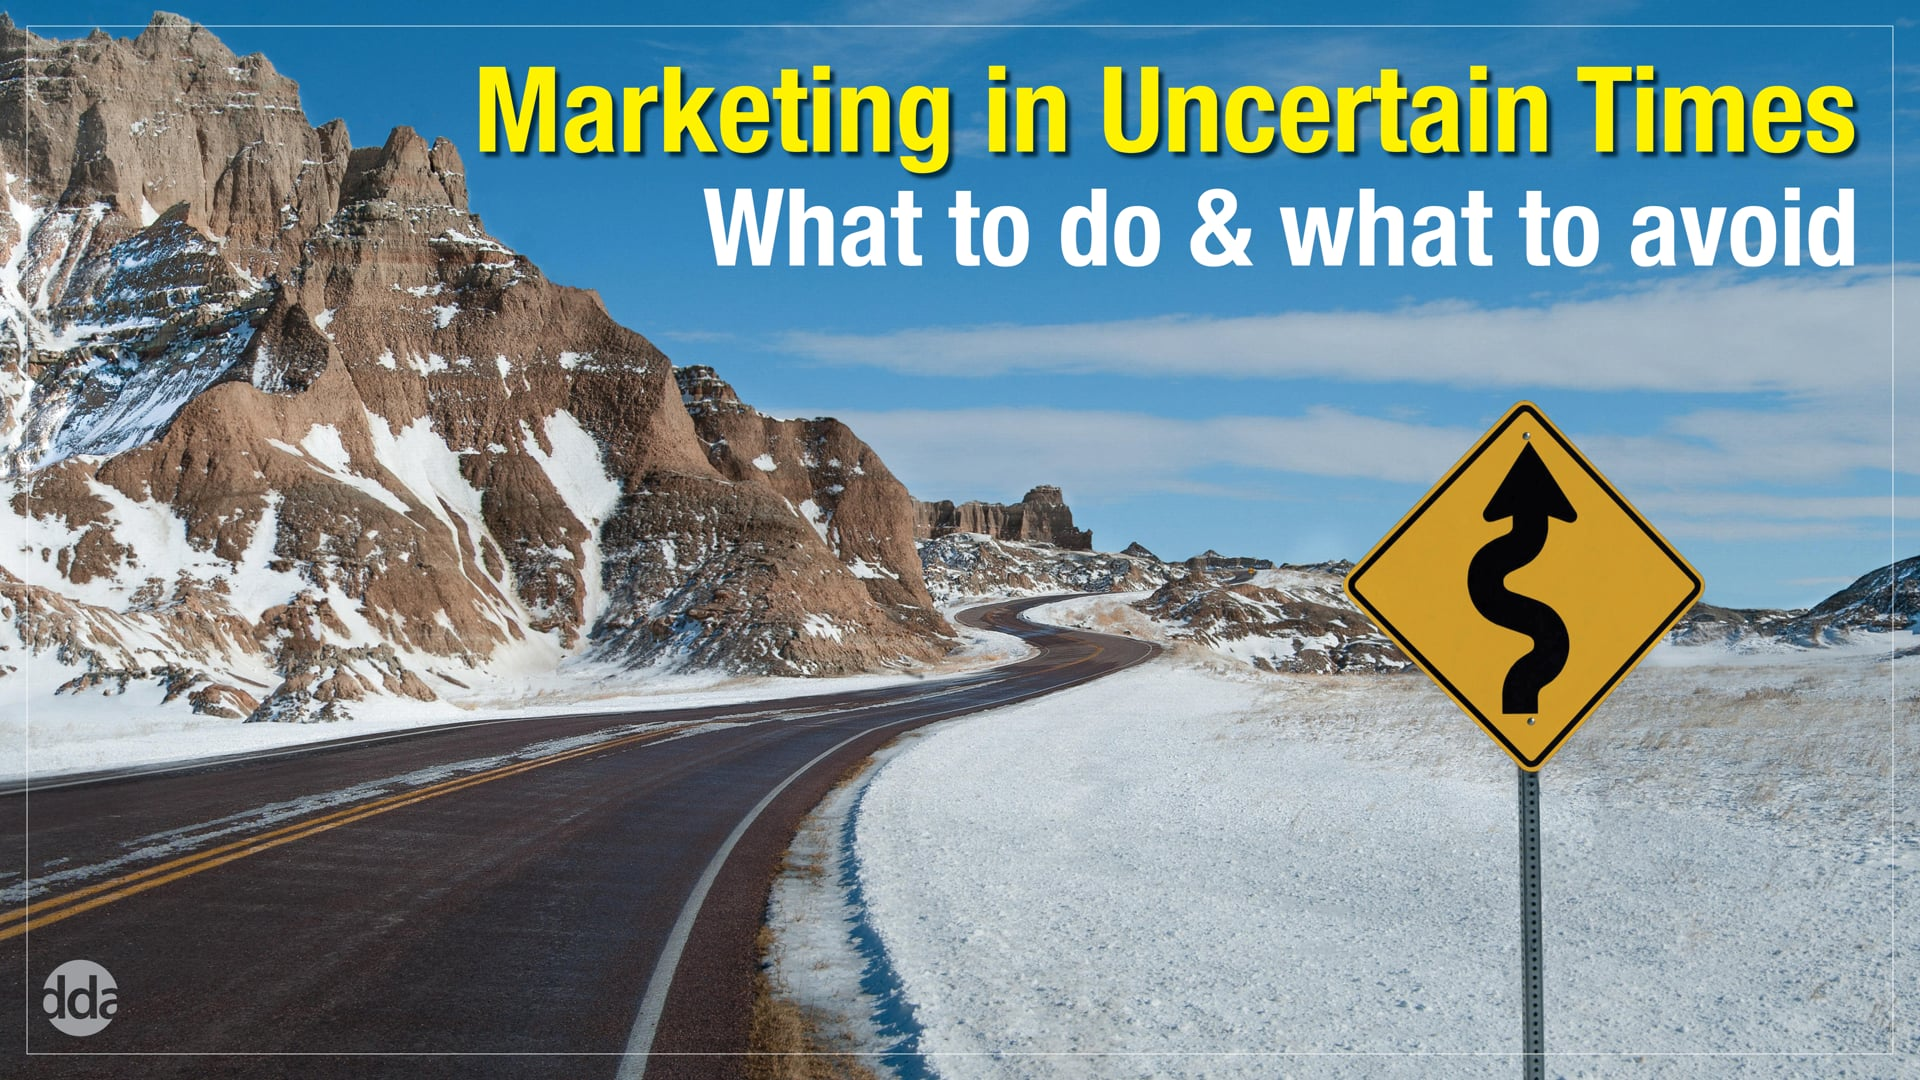 Marketing in Uncertain Times: What to do & what to avoid